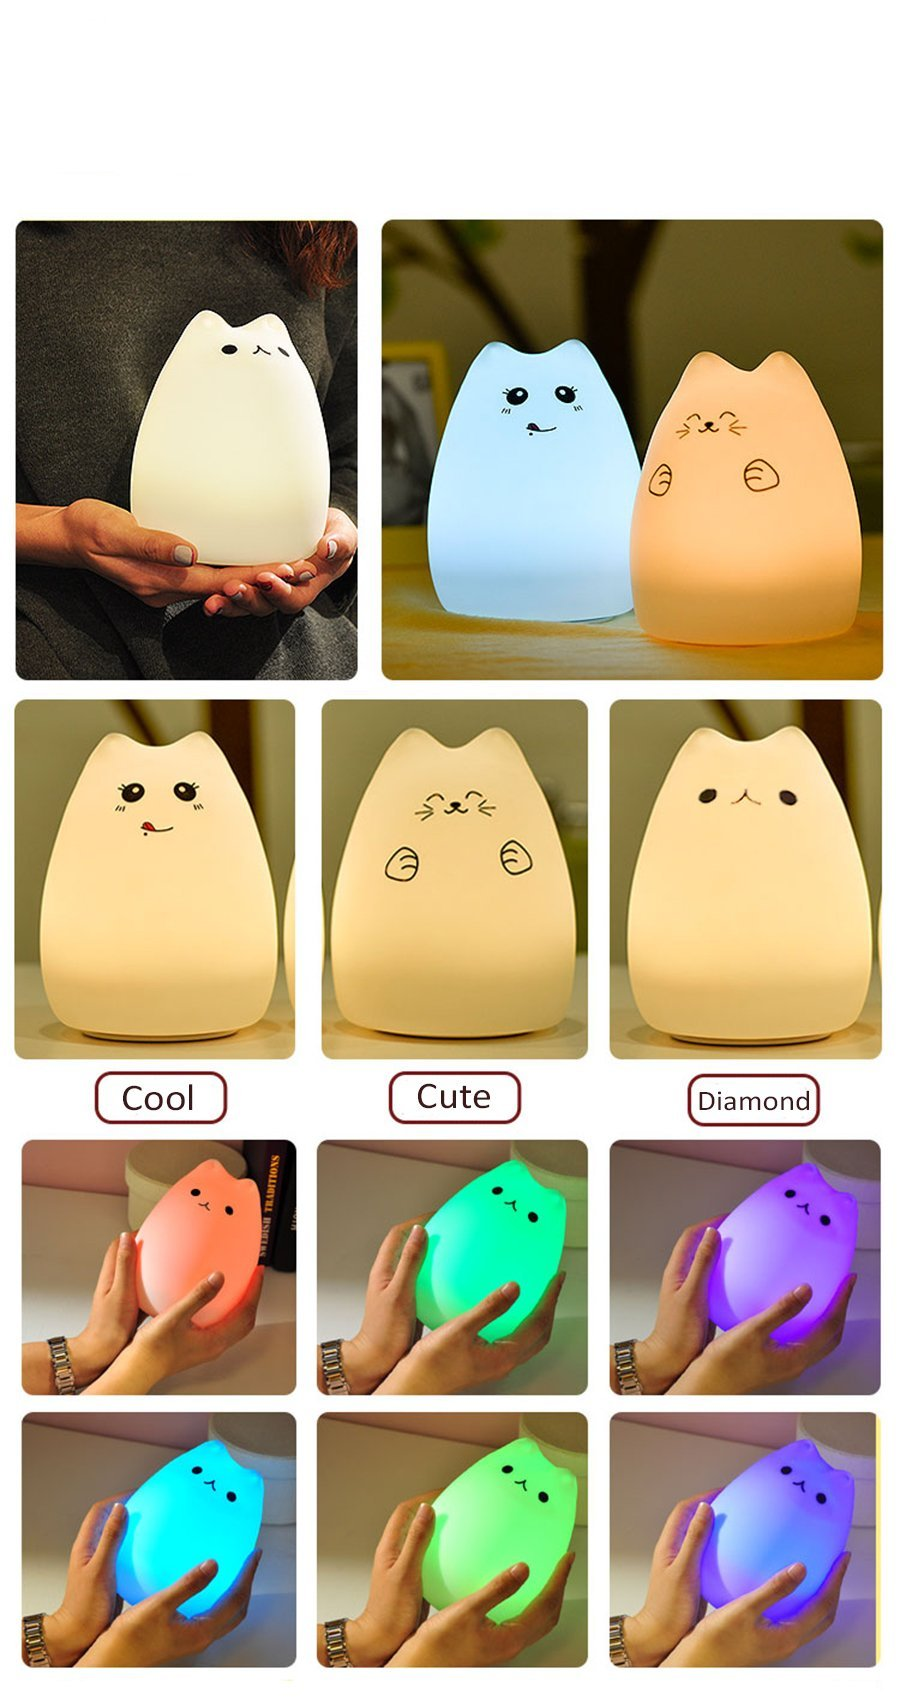 Light The Cat - Silicone Touch Lamp Light The Cat - Silicone Touch Lamp lamp The Purr House The Purr House- The Purr House